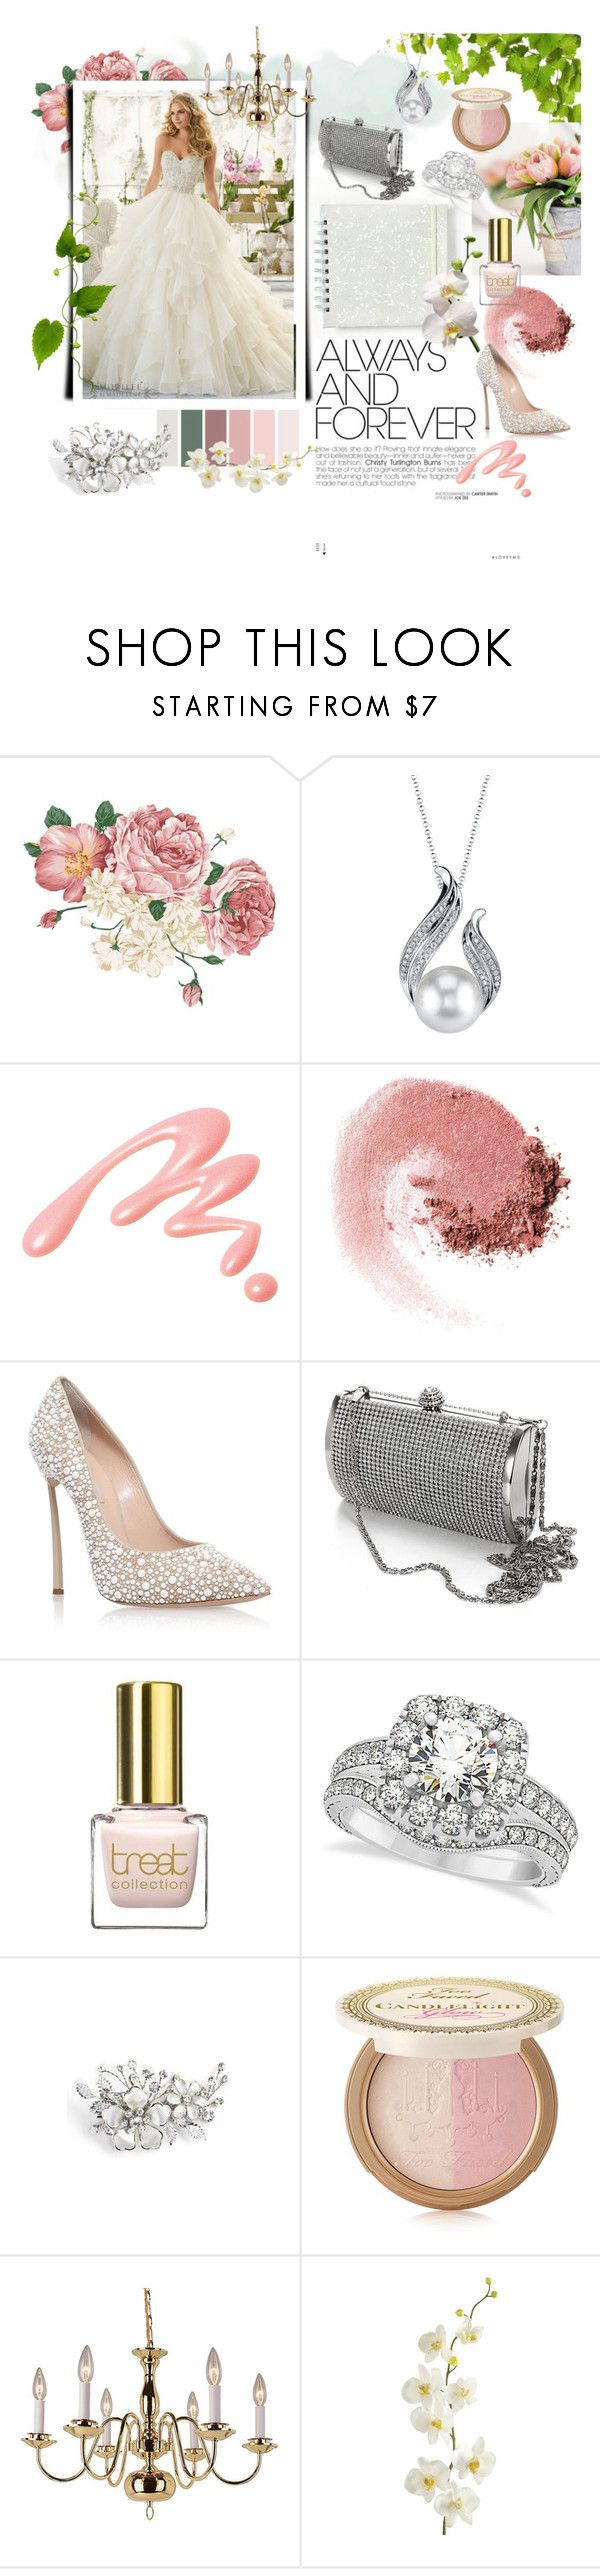 """""""Blush wedding"""" by iwona-estera on Polyvore featuring Mori Lee, Chantecaille, NARS Cosmetics, Casadei, Allurez, Wedding Belles New York, Too Faced Cosmetics, Improvements and Pier 1 Imports"""